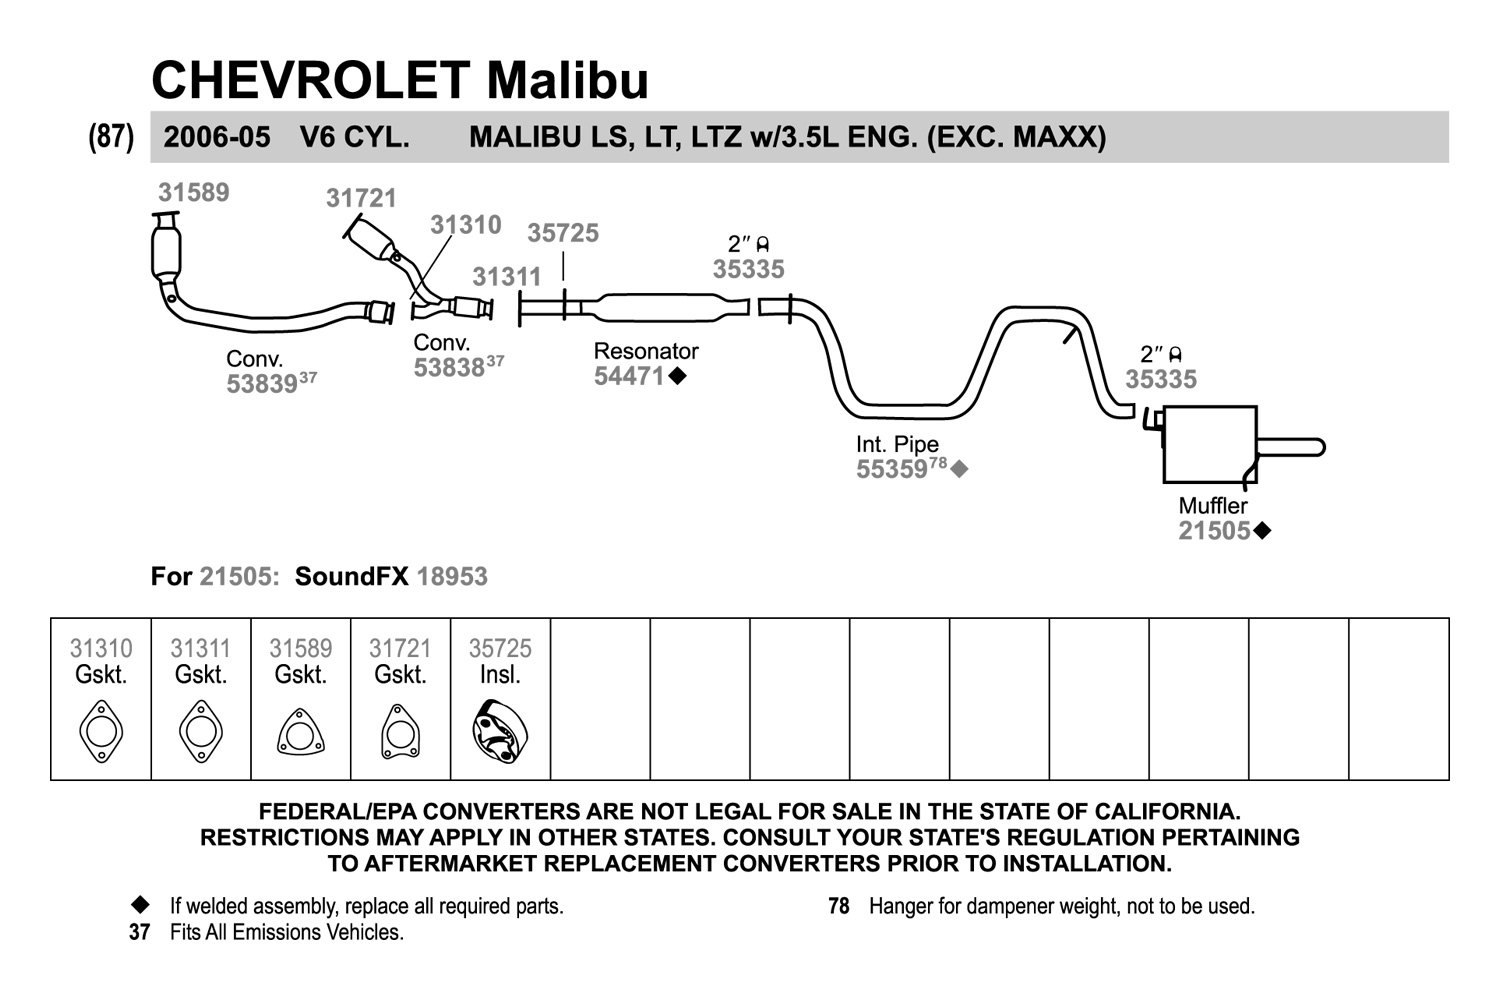 A5382C4 Wiring Diagram For 2010 Chevy Malibu | Wiring Resources on electronic circuit diagrams, switch diagrams, honda motorcycle repair diagrams, troubleshooting diagrams, sincgars radio configurations diagrams, electrical diagrams, friendship bracelet diagrams, engine diagrams, led circuit diagrams, transformer diagrams, pinout diagrams, lighting diagrams, smart car diagrams, gmc fuse box diagrams, hvac diagrams, battery diagrams, internet of things diagrams, motor diagrams, series and parallel circuits diagrams,